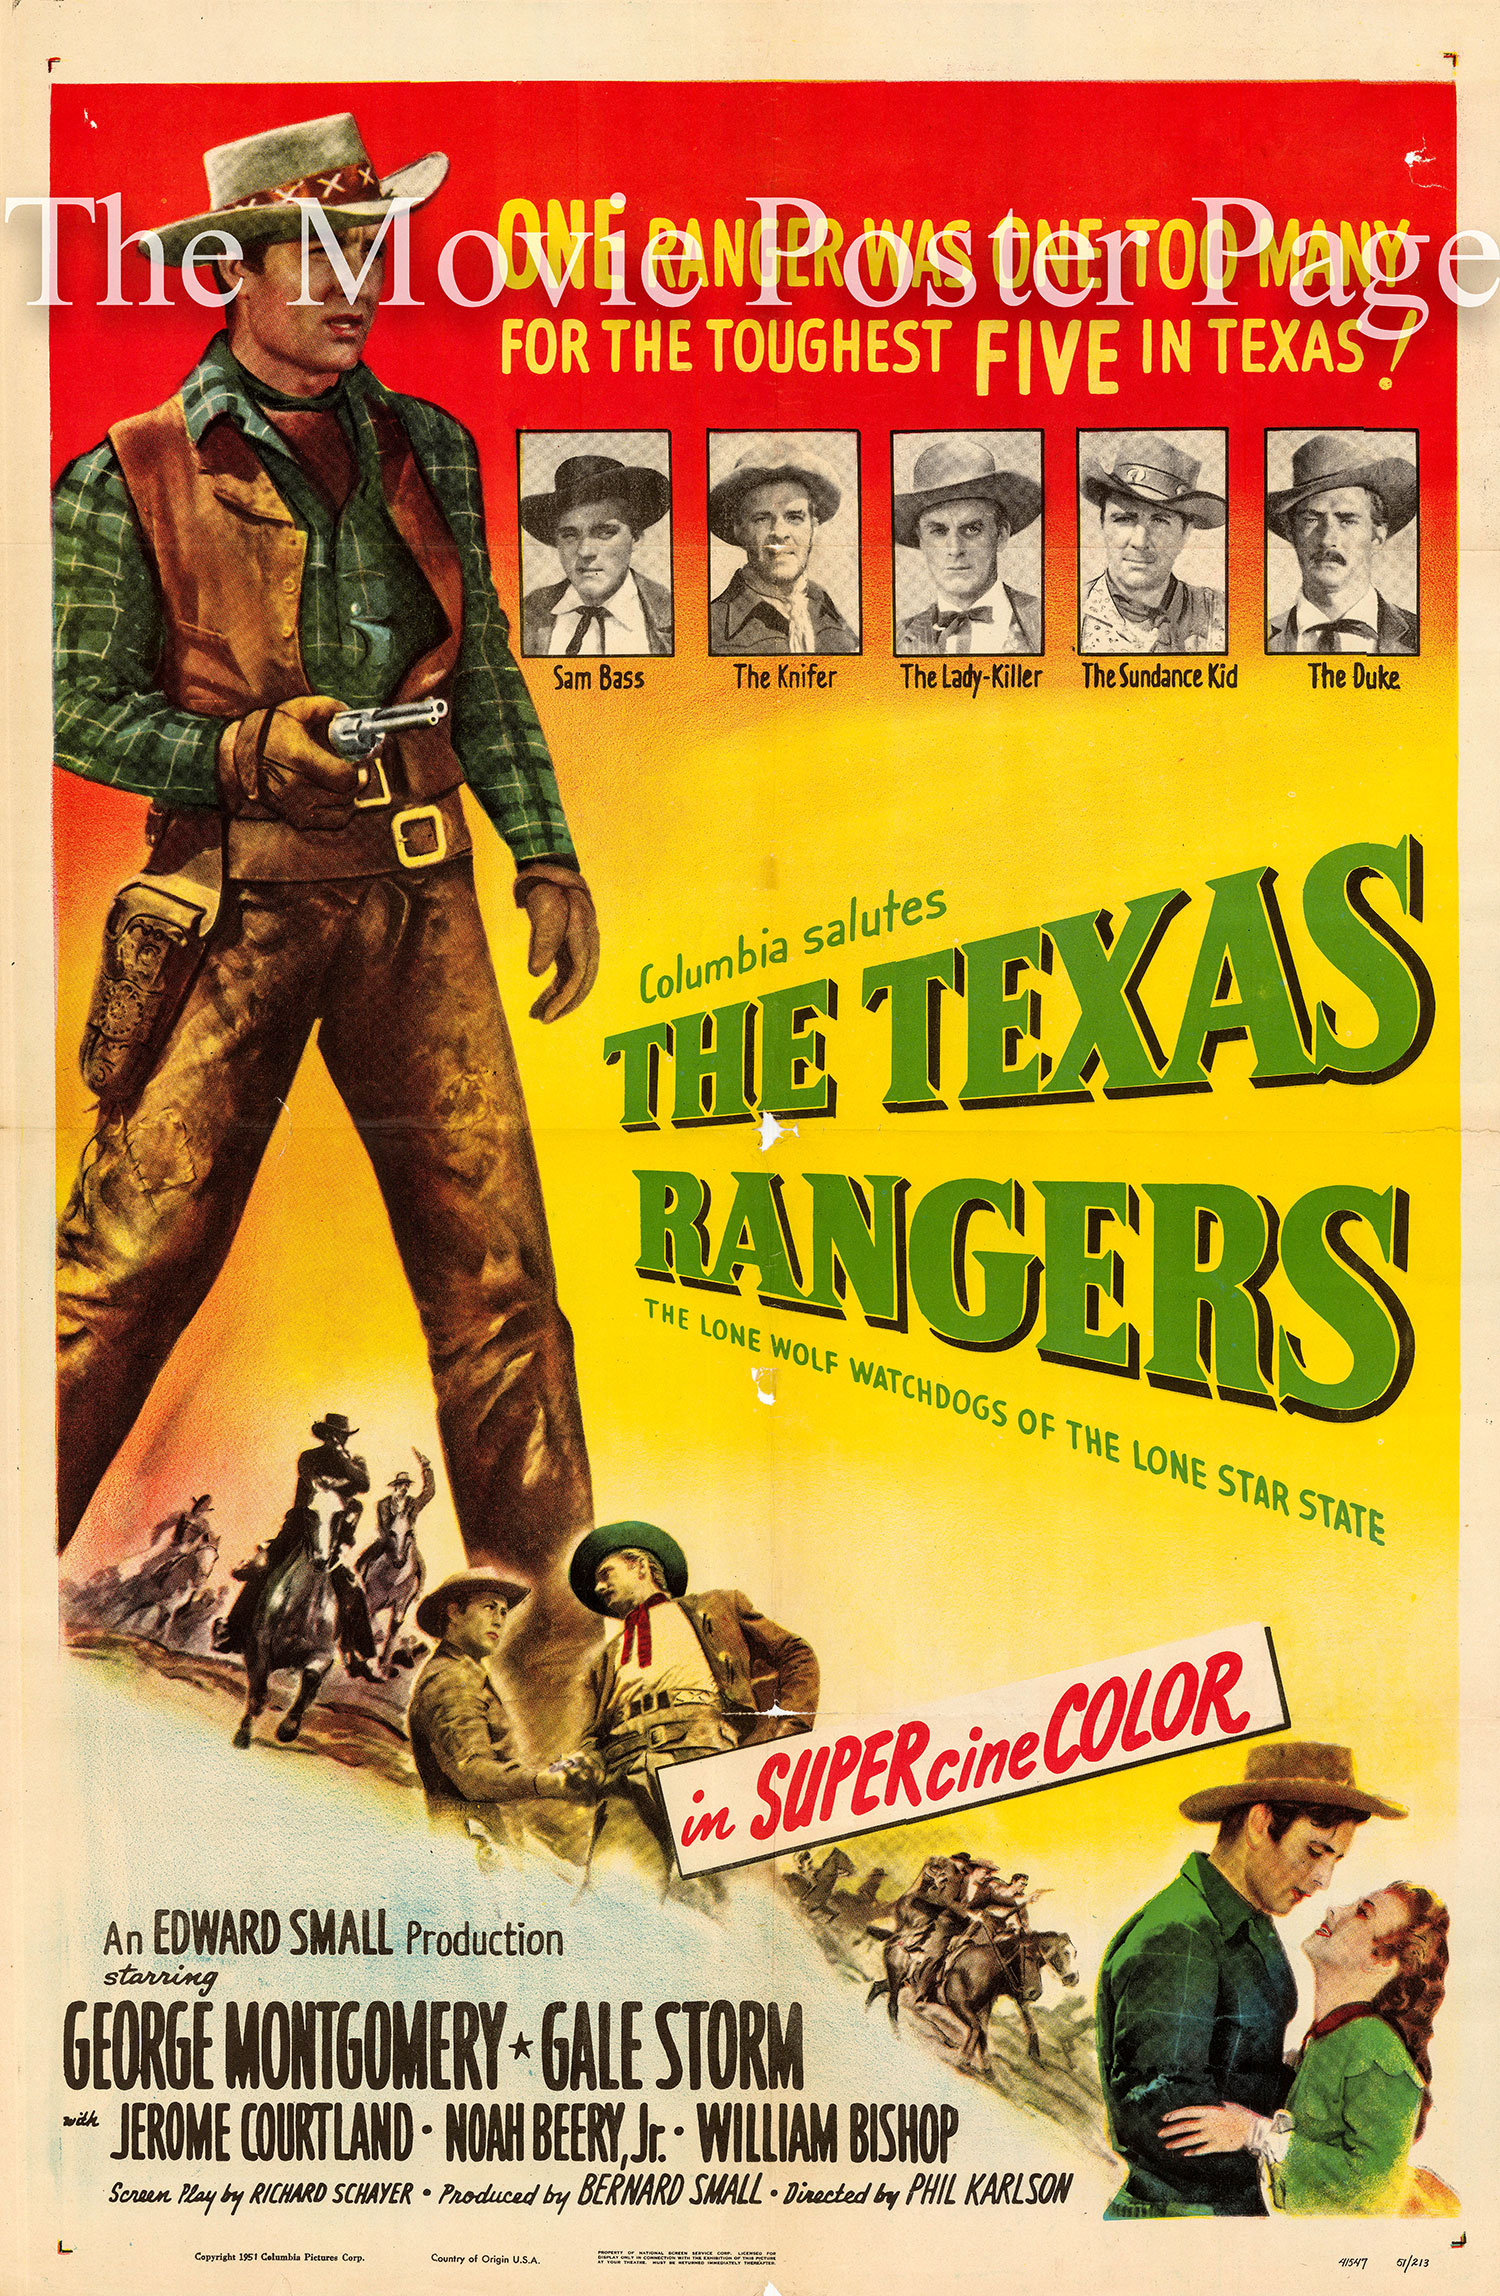 Pictured is a US one-sheet promotional poster for the 1951 Phil Karlson film The Texas Rangers starring George Montgomery.